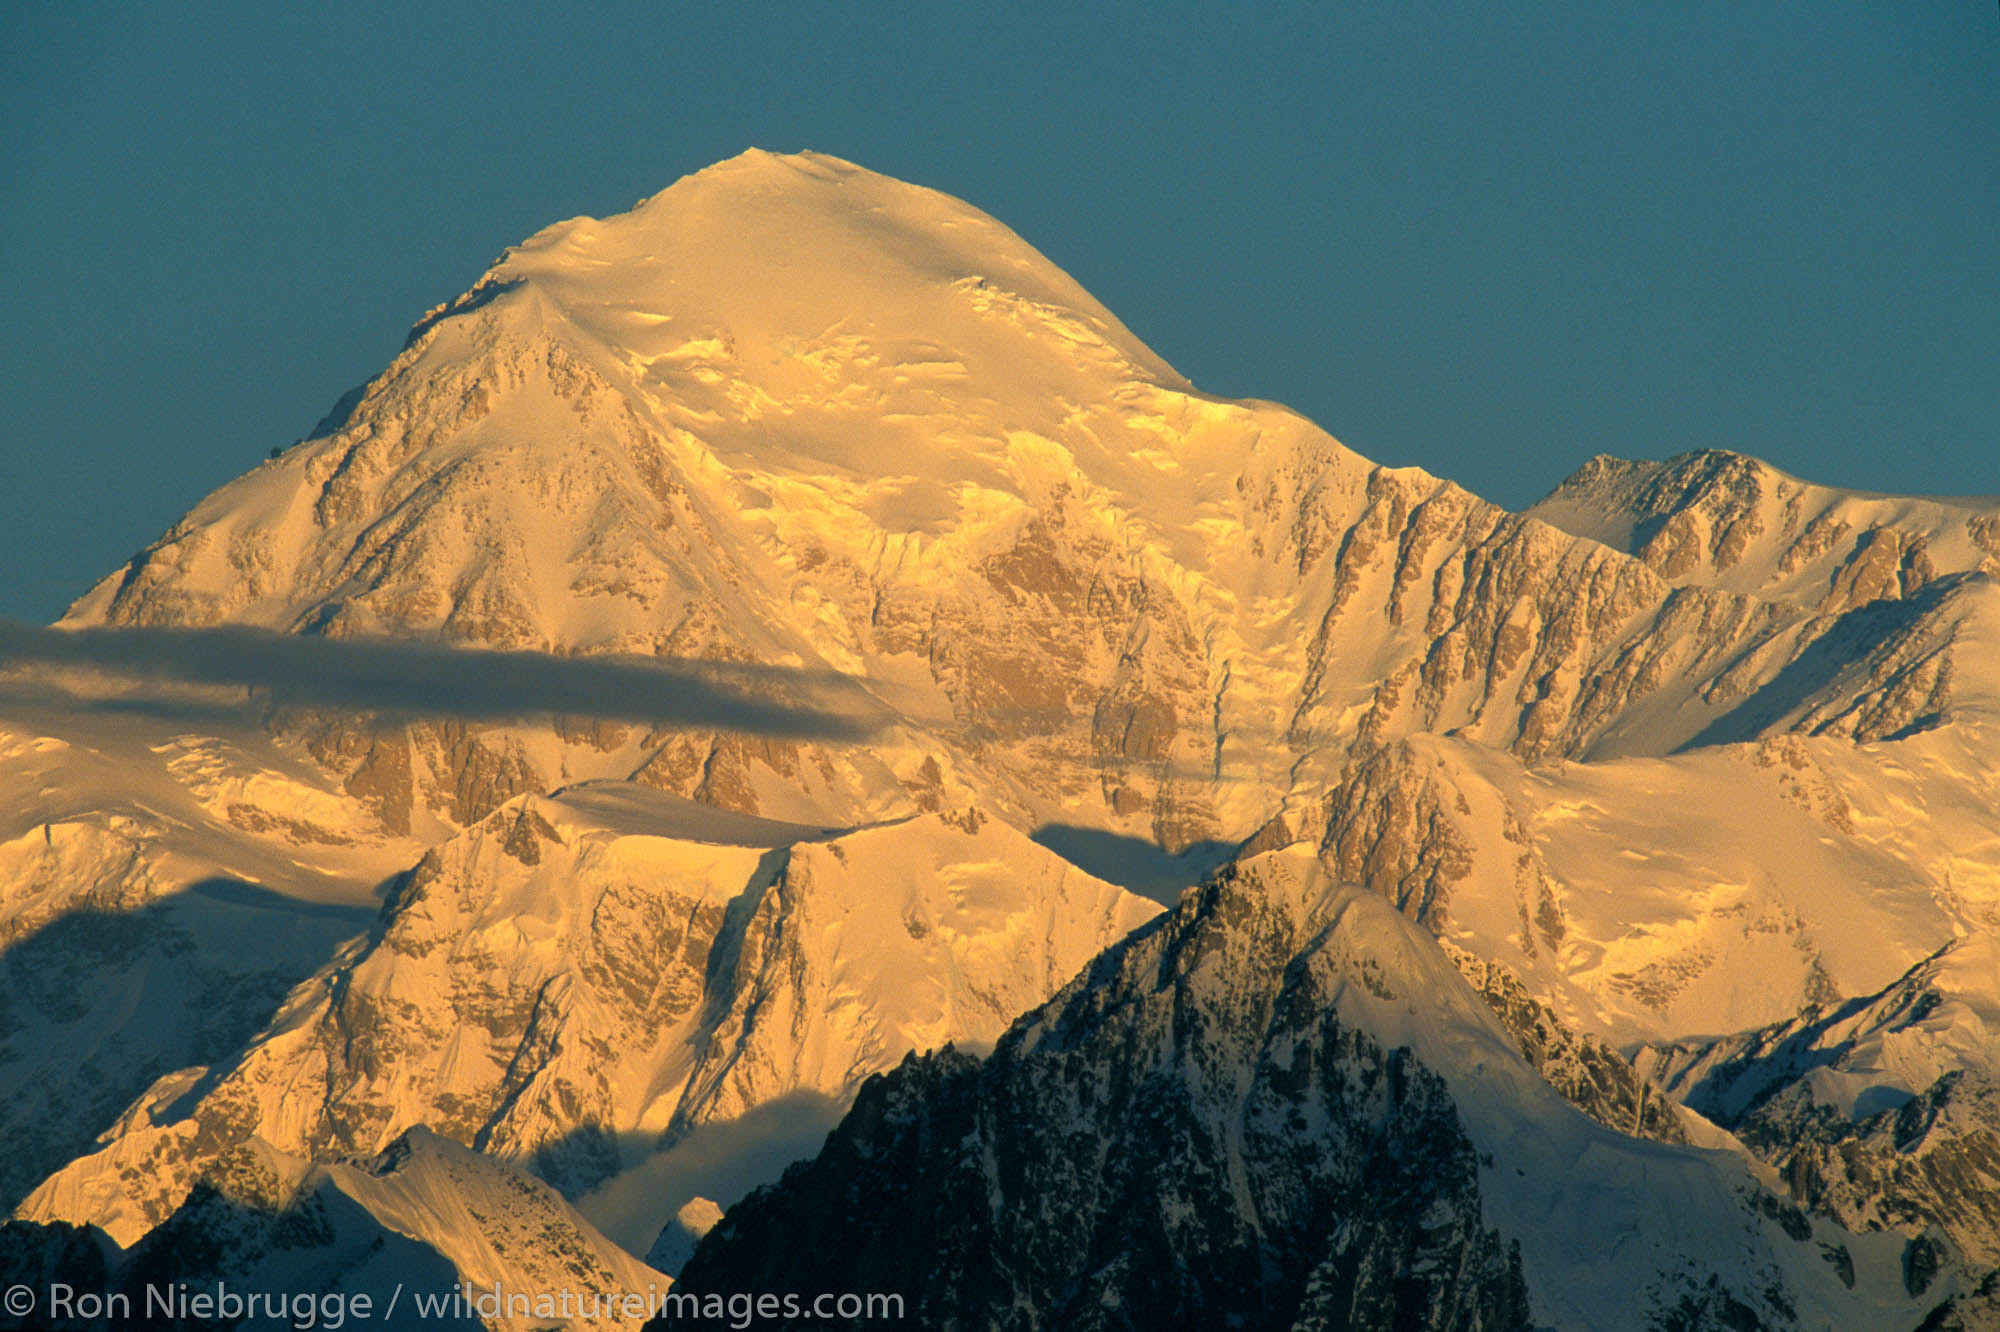 The south face of Mt McKinley and Denali National Park from the Parks Highway, Alaska.